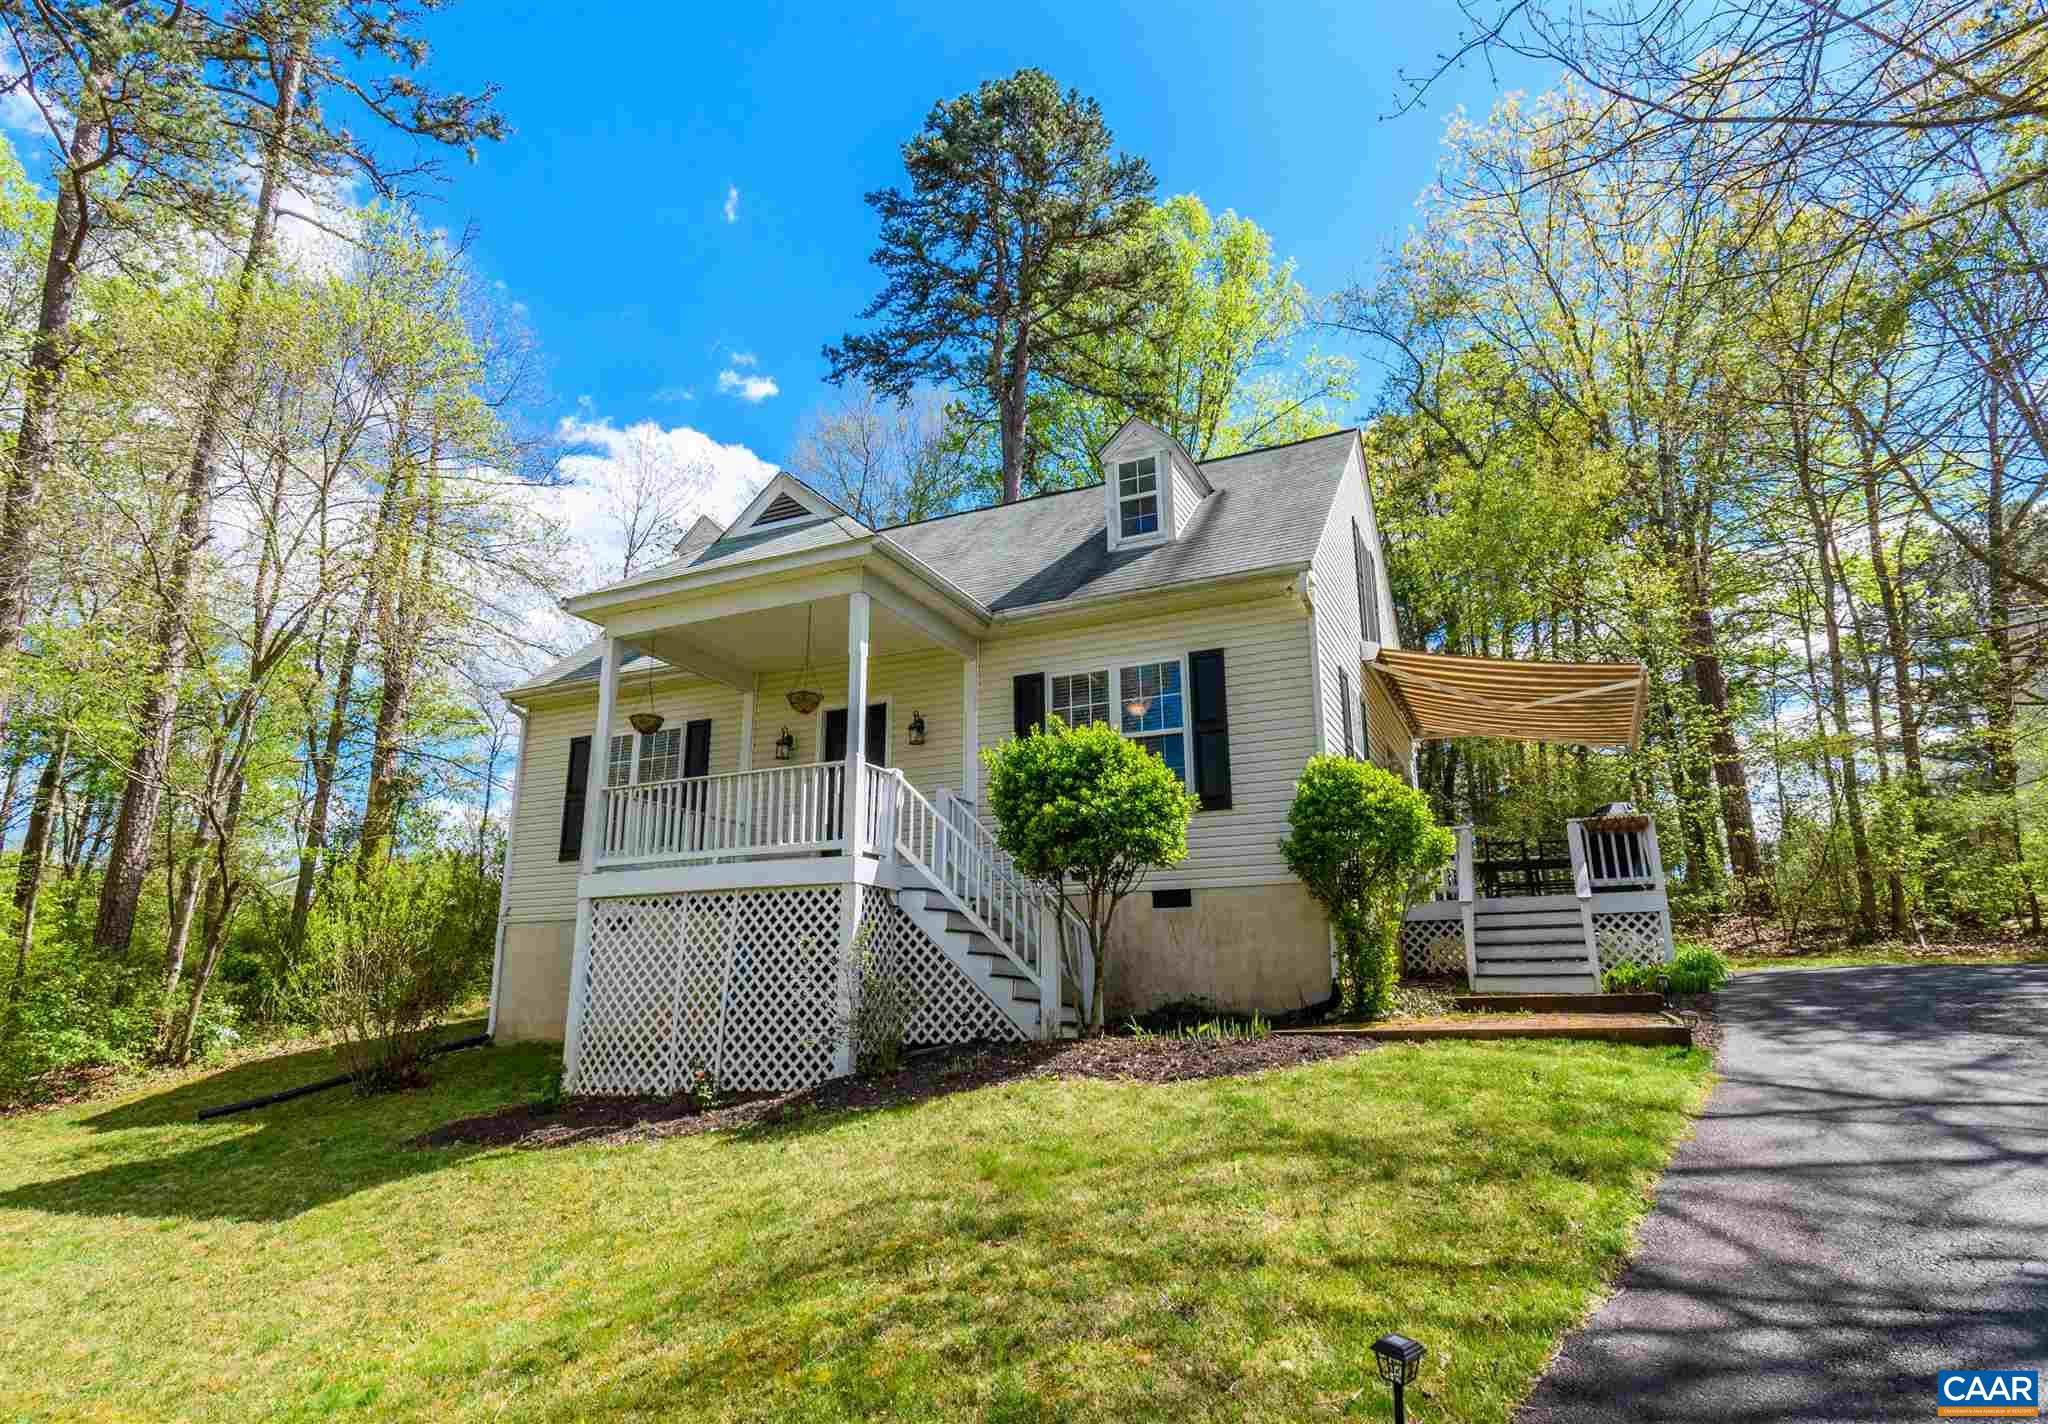 Well-priced and well-maintained 3BR 2BA Cape Cod style house in popular Twin Lake Estates with 1,482 finished sq ft on two levels. Sited on over two-thirds of an acre, on an elevated, partially wooded lot, this house offers privacy with Blue Ridge views from almost every room! There is a wonderful side porch/deck with a retractable awning for those sunny days and cozy evenings. Main level features include a spacious living room, large eat-in kitchen opening onto the inviting side porch/deck, and two generously-sized bedrooms plus full hall bath. Current owner thoughtfully transformed the second floor into a master suite with large walk-in closet and full bath. Located minutes from Rt 29 and points north and south. A short drive to NGIC/DIA, and a few mins further down Rt 29 to the Charlottesville Airport and Hollymead Town Center. Downtown Charlottesville is 30-40 mins depending on time of day and traffic conditions. HOA maintains the ponds and the roads.